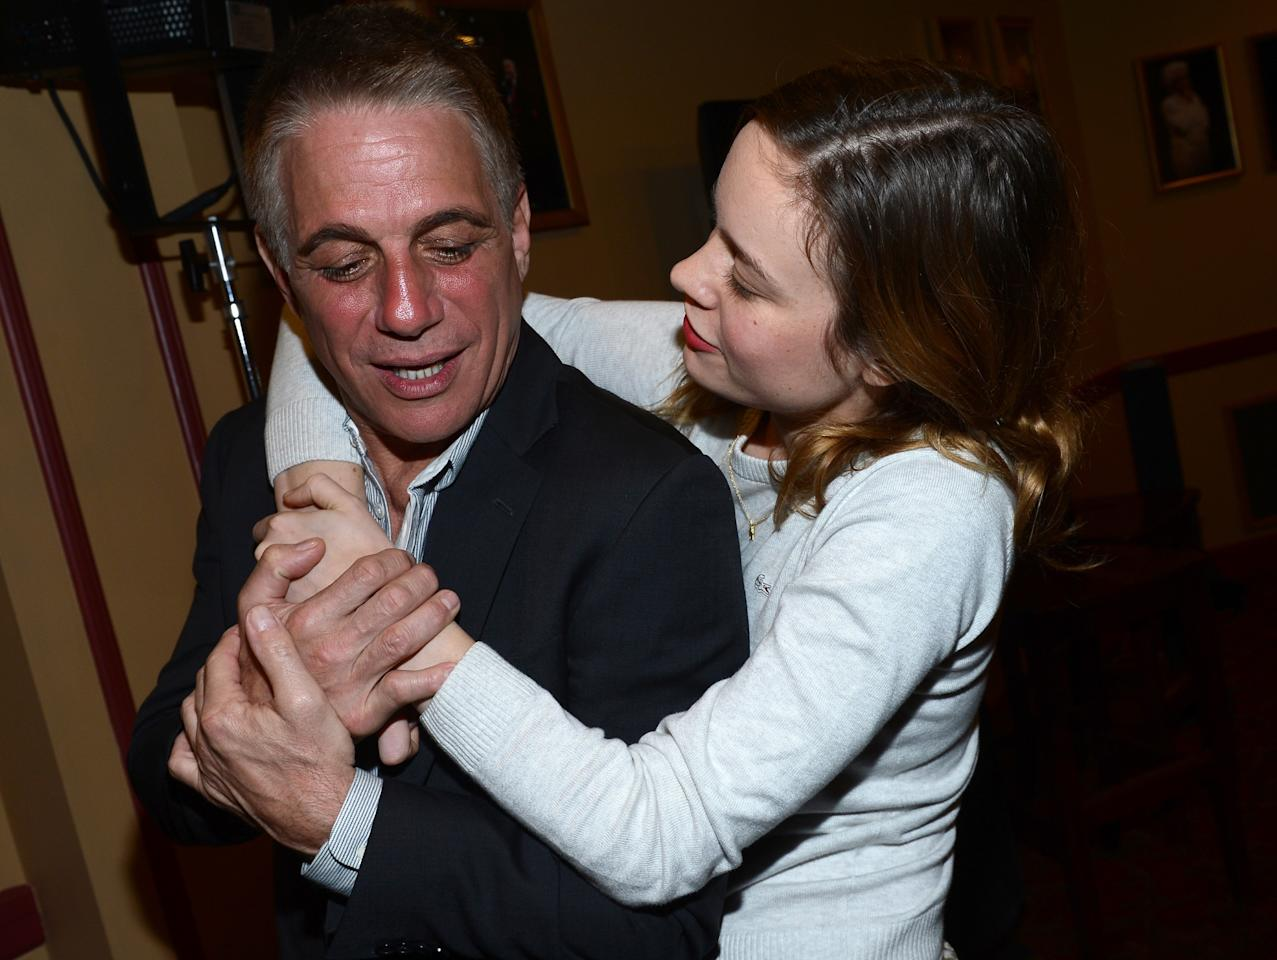 "AUSTIN, TX - MARCH 11:  Actor Tony Danza (L) and actress Brie Larson attend the Green Room Photo Op for ""Don Jon's Addiction"" during the 2013 SXSW Music, Film + Interactive Festival at the Paramount Theatre on March 11, 2013 in Austin, Texas.  (Photo by Michael Buckner/Getty Images for SXSW)"